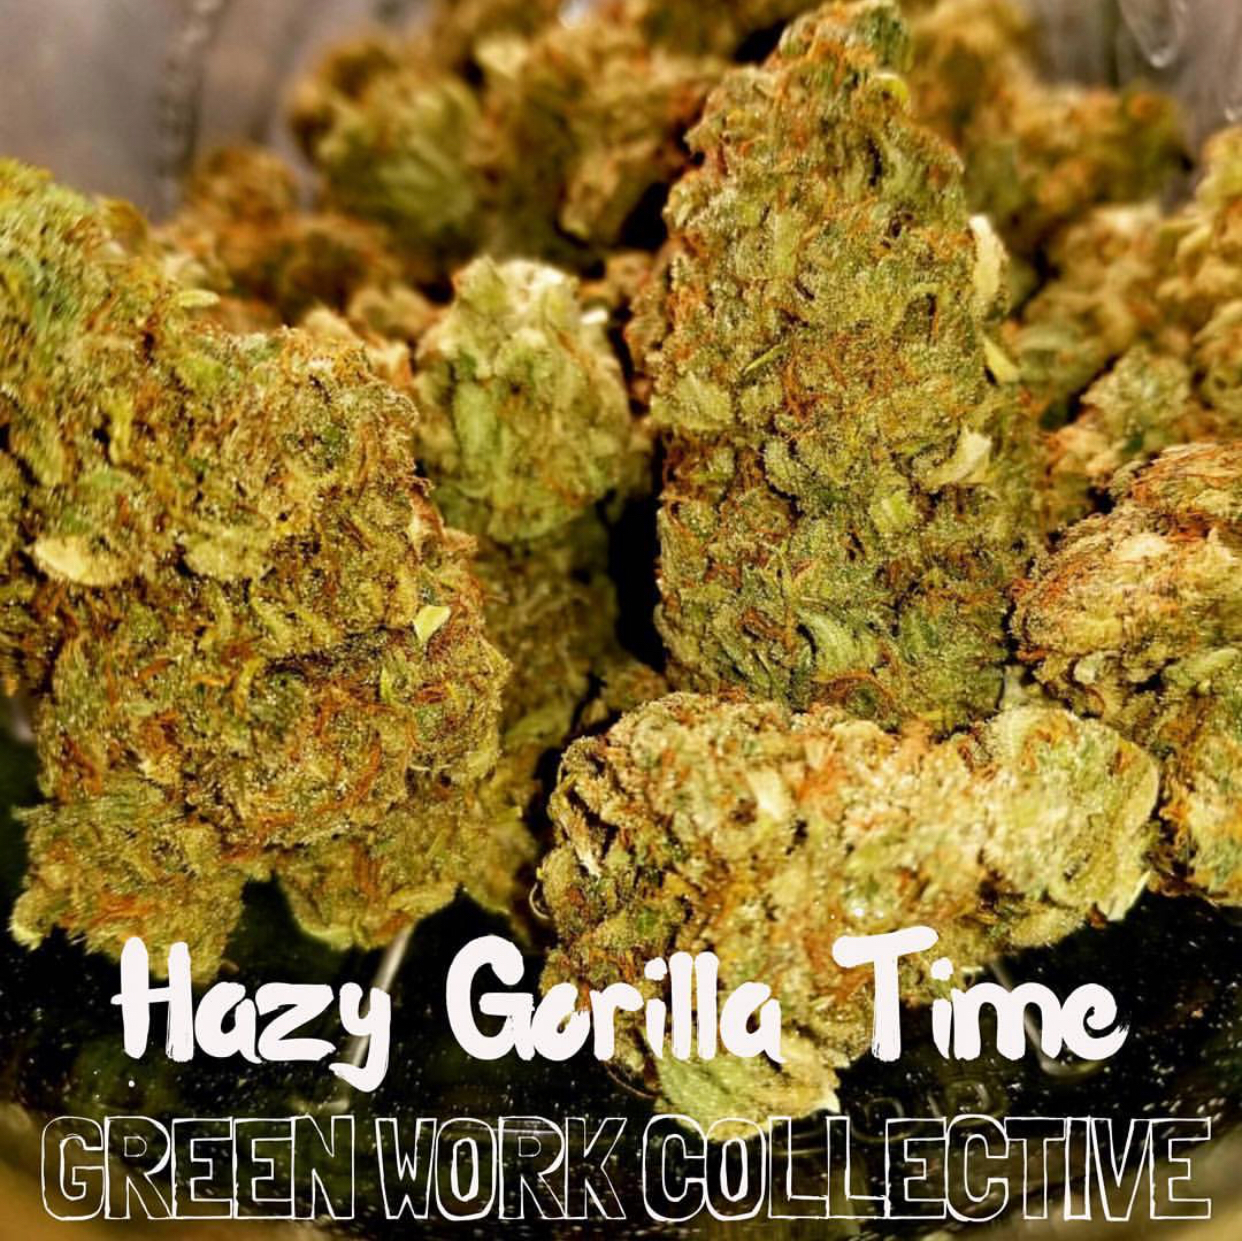 Hazy Gorilla Time ((Gorilla Glue #4 x Clockwork Orange) x Malawi) 7 Regular Seeds